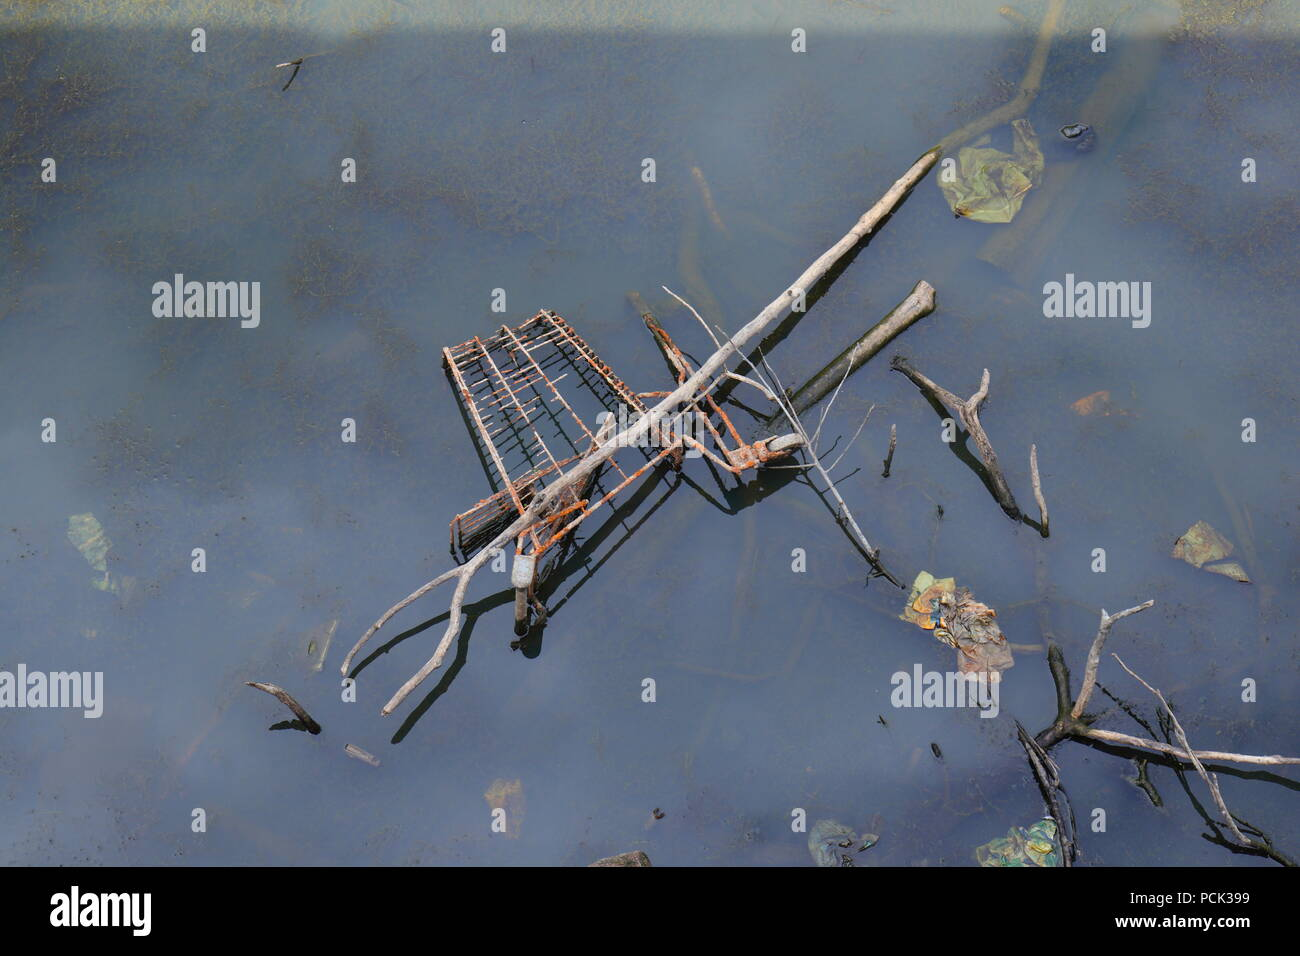 A  shopping trolley lays rusting away in a pond - Stock Image